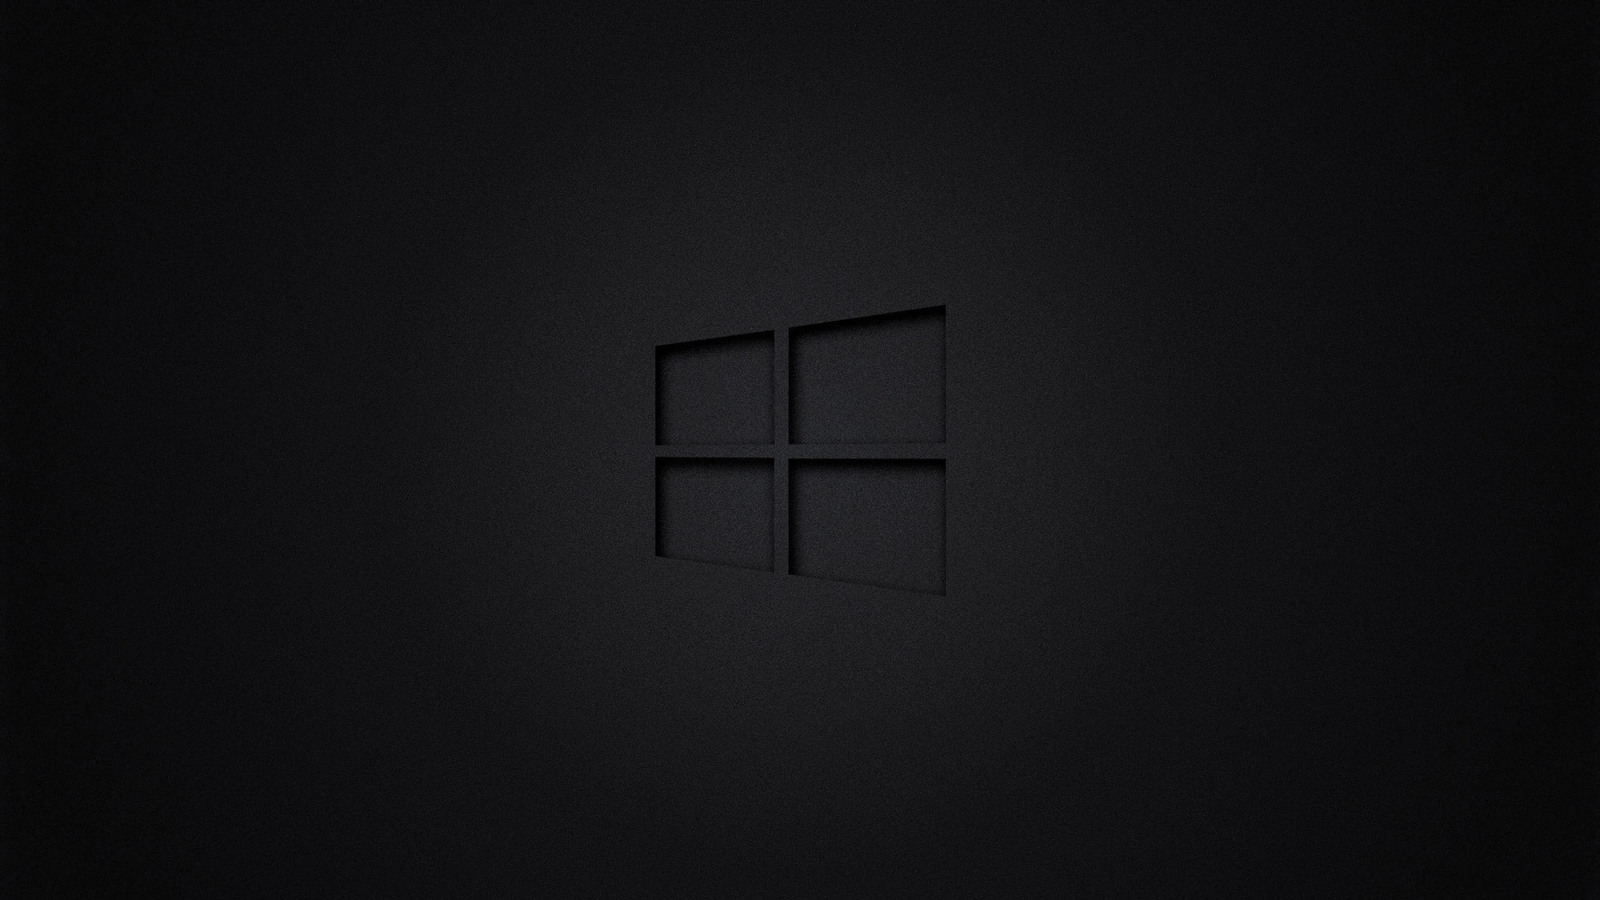 1600x900 Windows 10 Dark 1600x900 Resolution HD 4k Wallpapers, Images, Backgrounds, Photos and ...